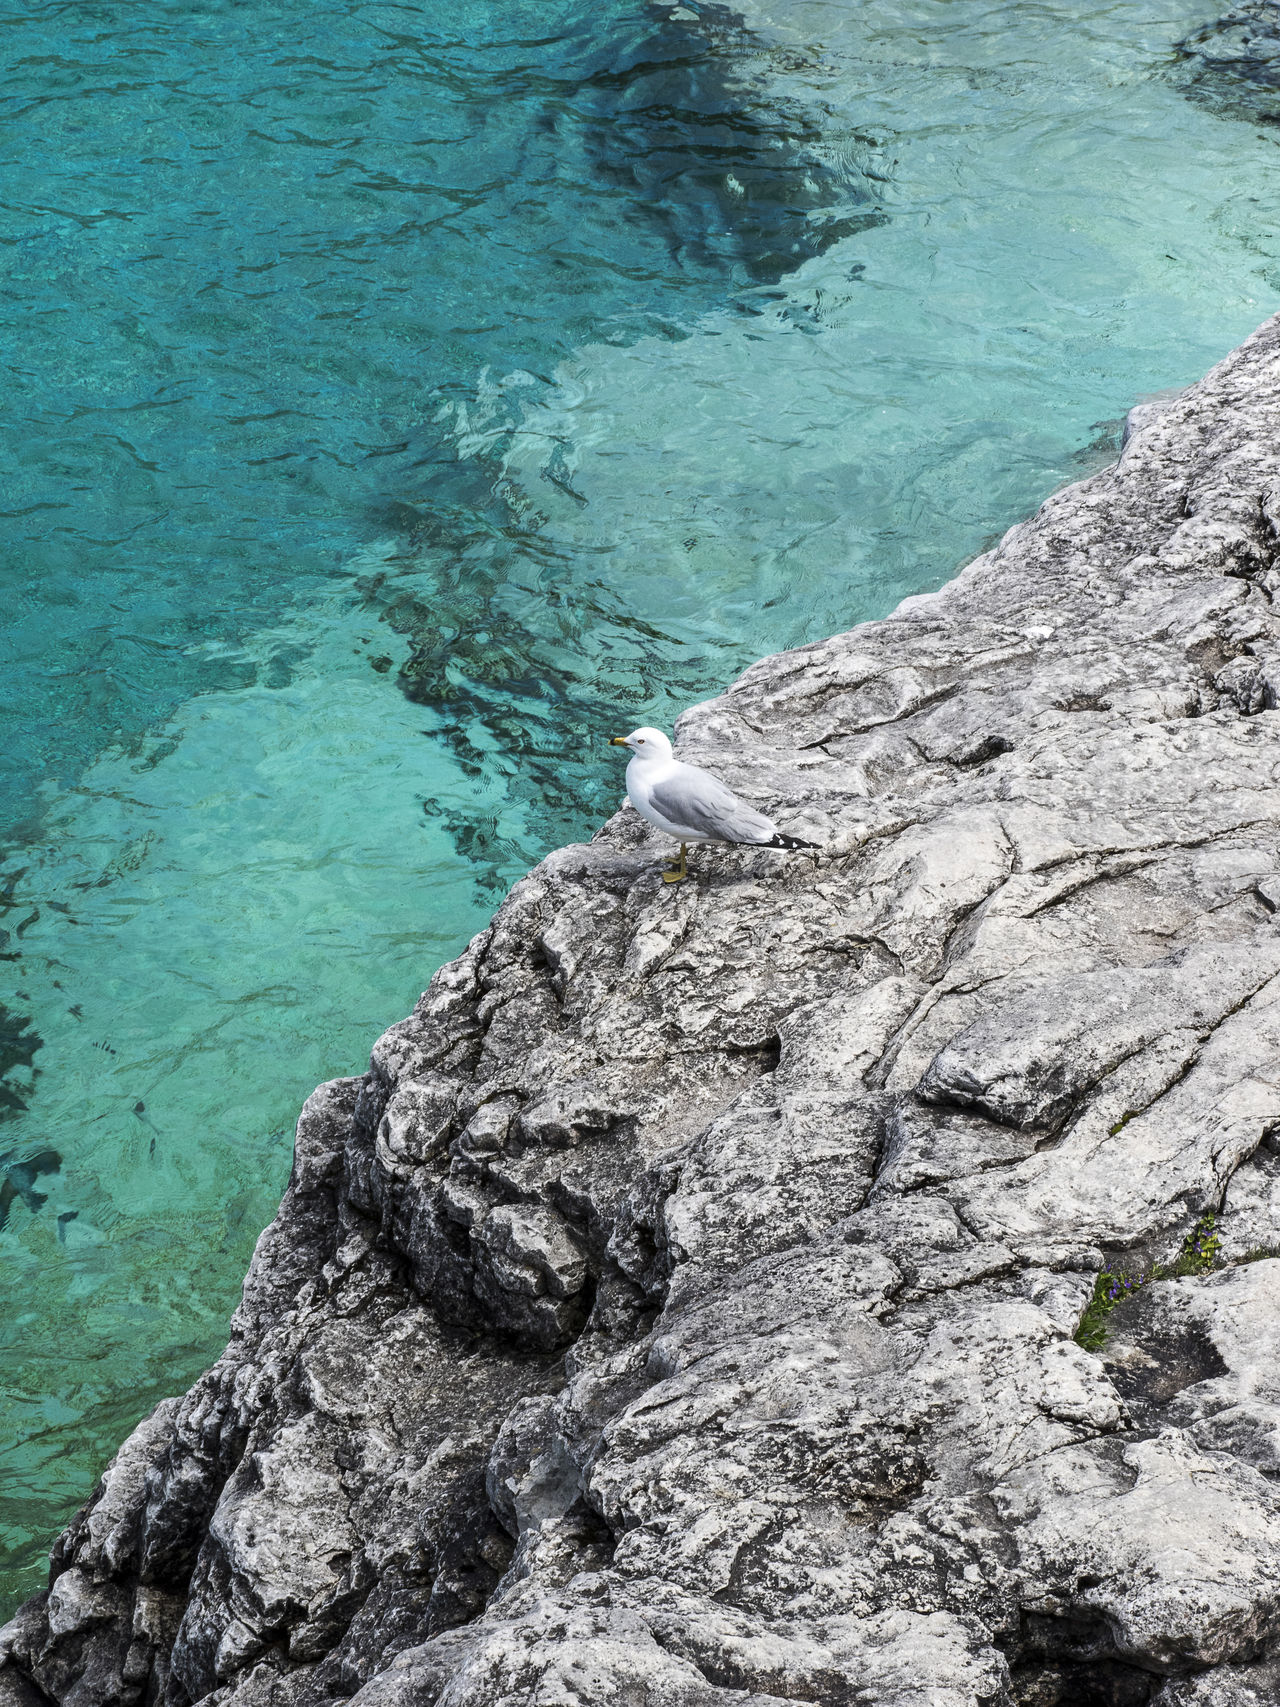 Water High Angle View Sea Day Outdoors Nature Lake Beach Coastal Shoreline Stone Clear Water_collection Great Lakes Blue Crystal Mountain Grotto Adventure Bird Seagull Wildlife Standing Geology